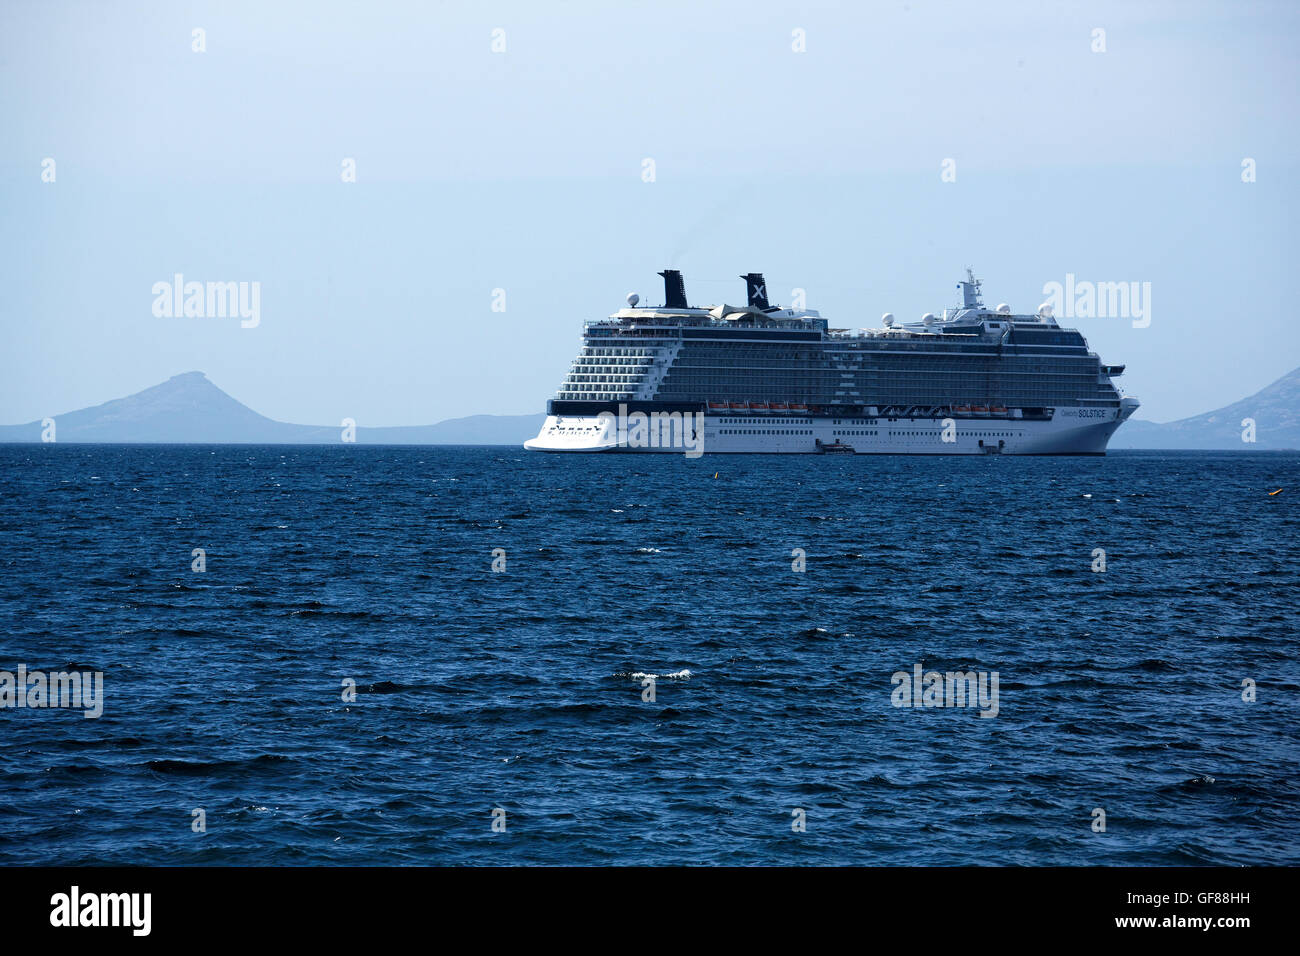 Celebrity Cruise Ship Solstice At Anchor With Frenchman Peak In The